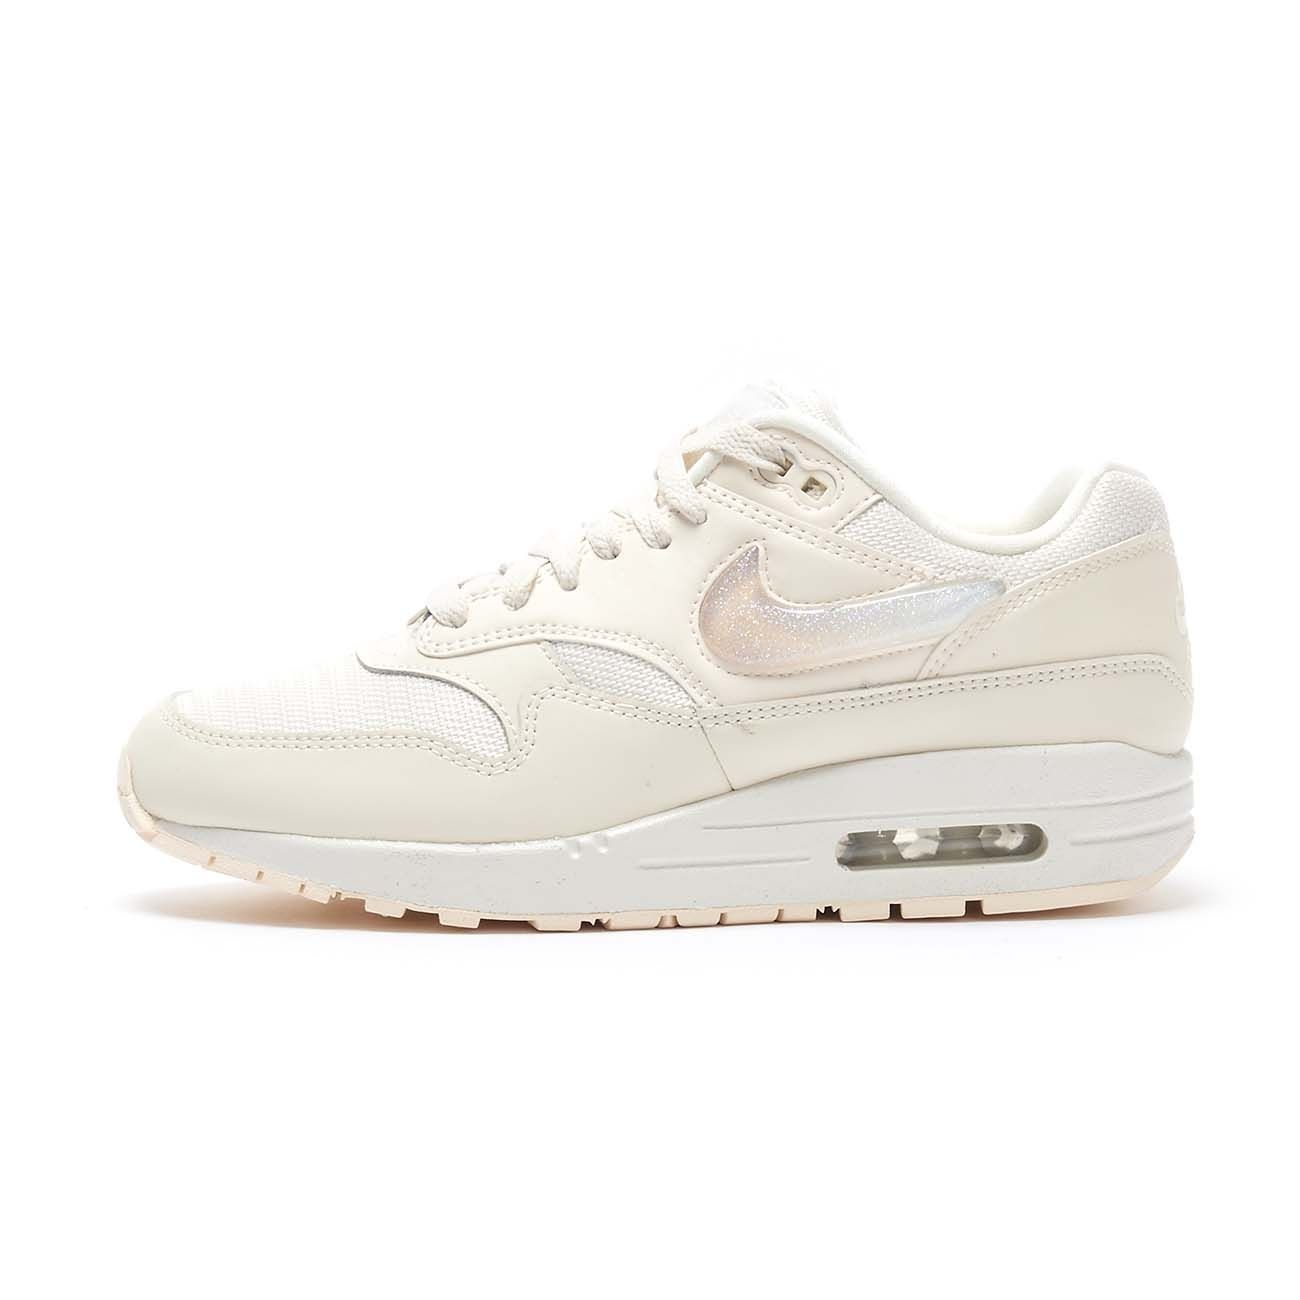 NIKE SNEAKERS AIR MAX 1 JP Woman Pale ivory summit white ...